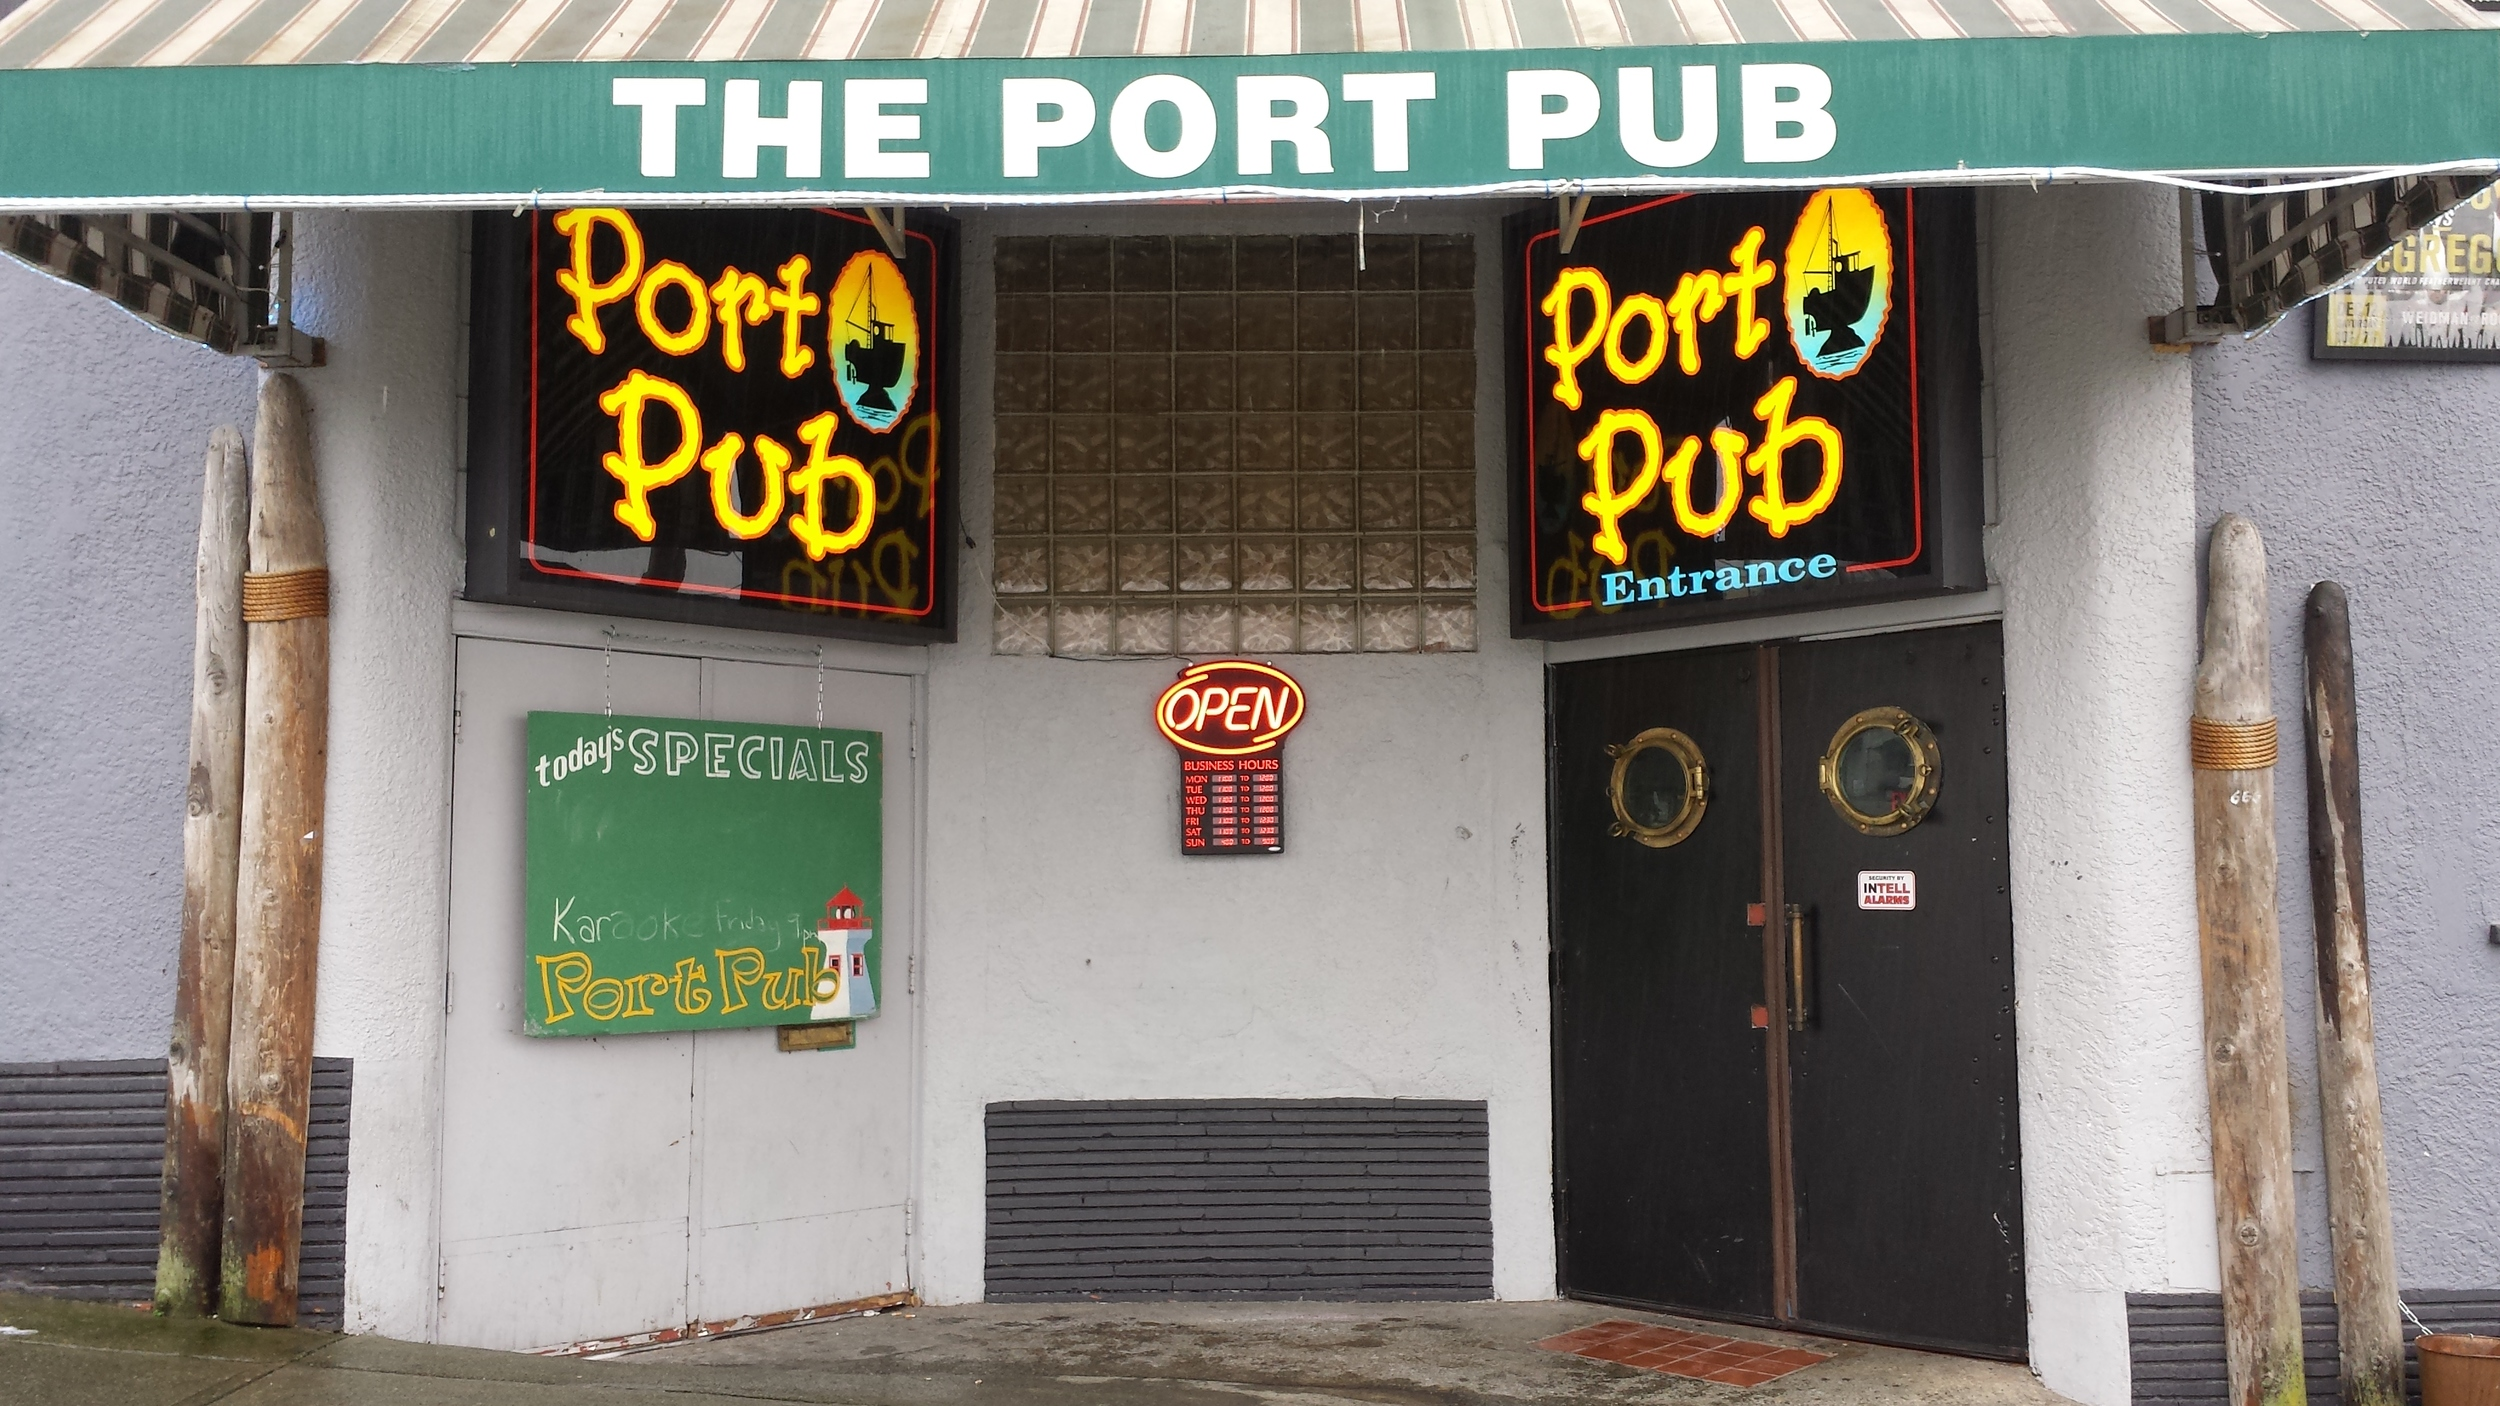 port sports pub entrance